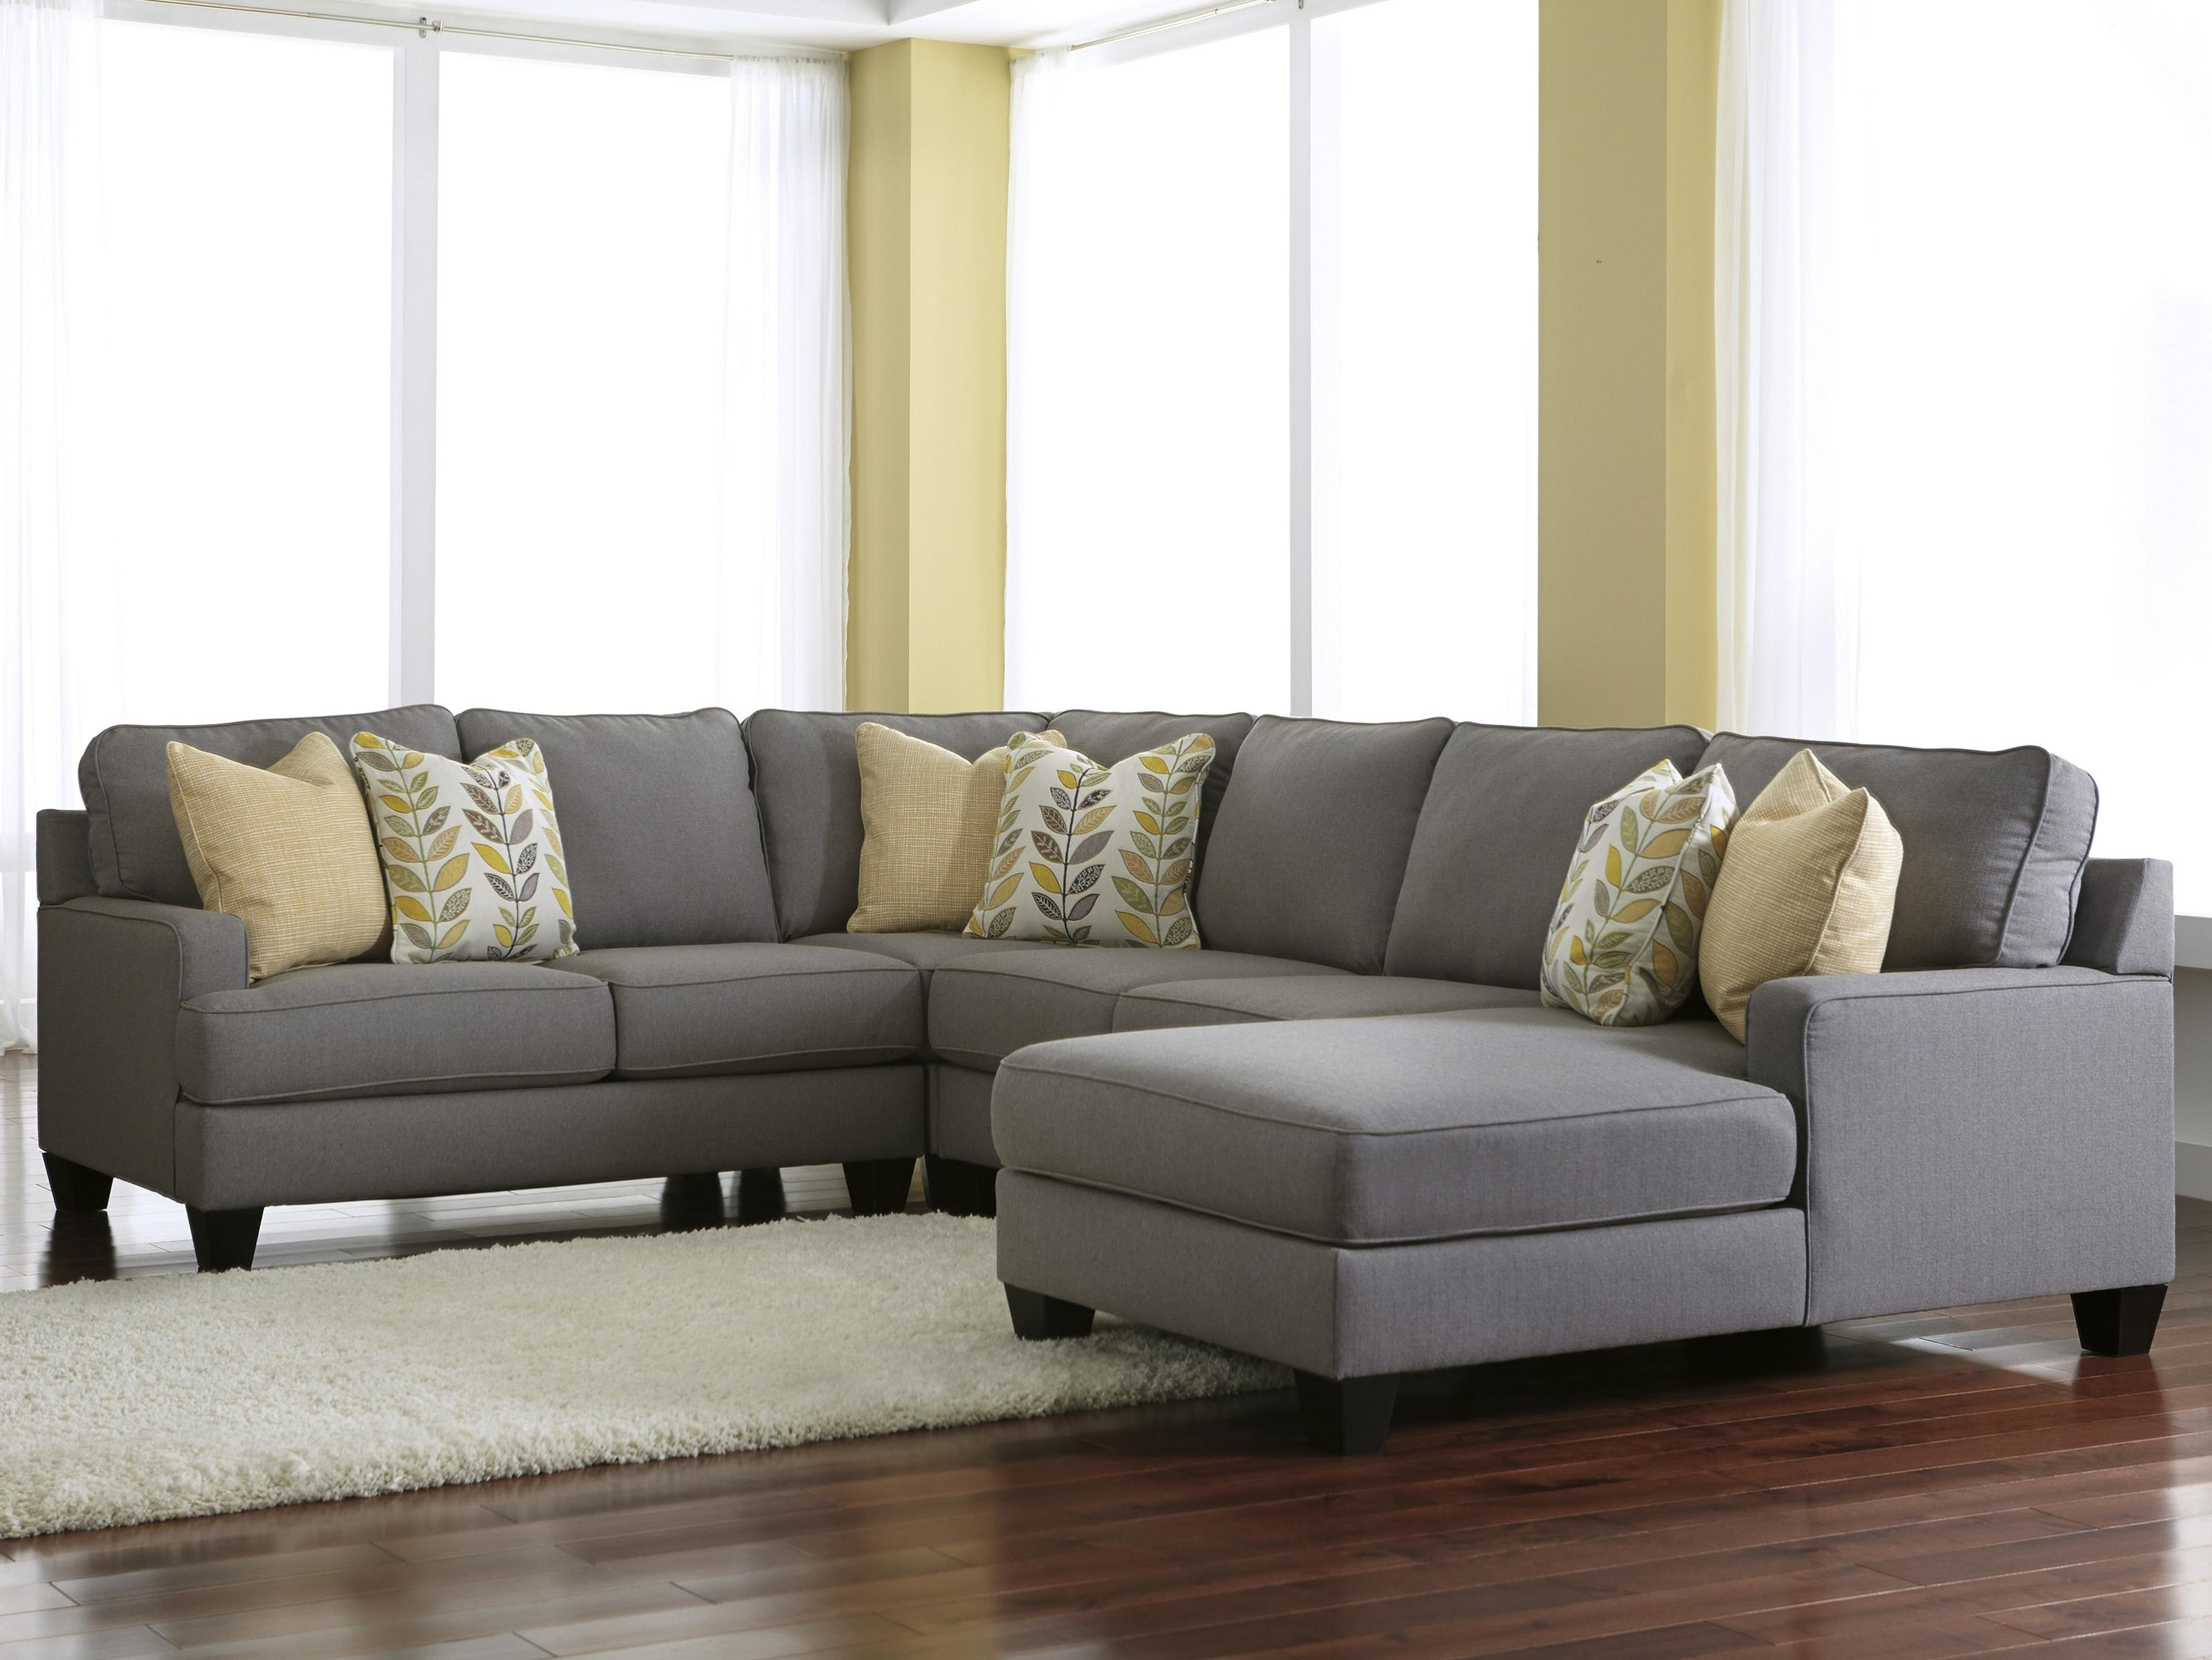 Popular Modern 4 Piece Sectional Sofa With Left Chaise & Reversible Seat Inside Gallery Furniture Sectional Sofas (View 18 of 20)